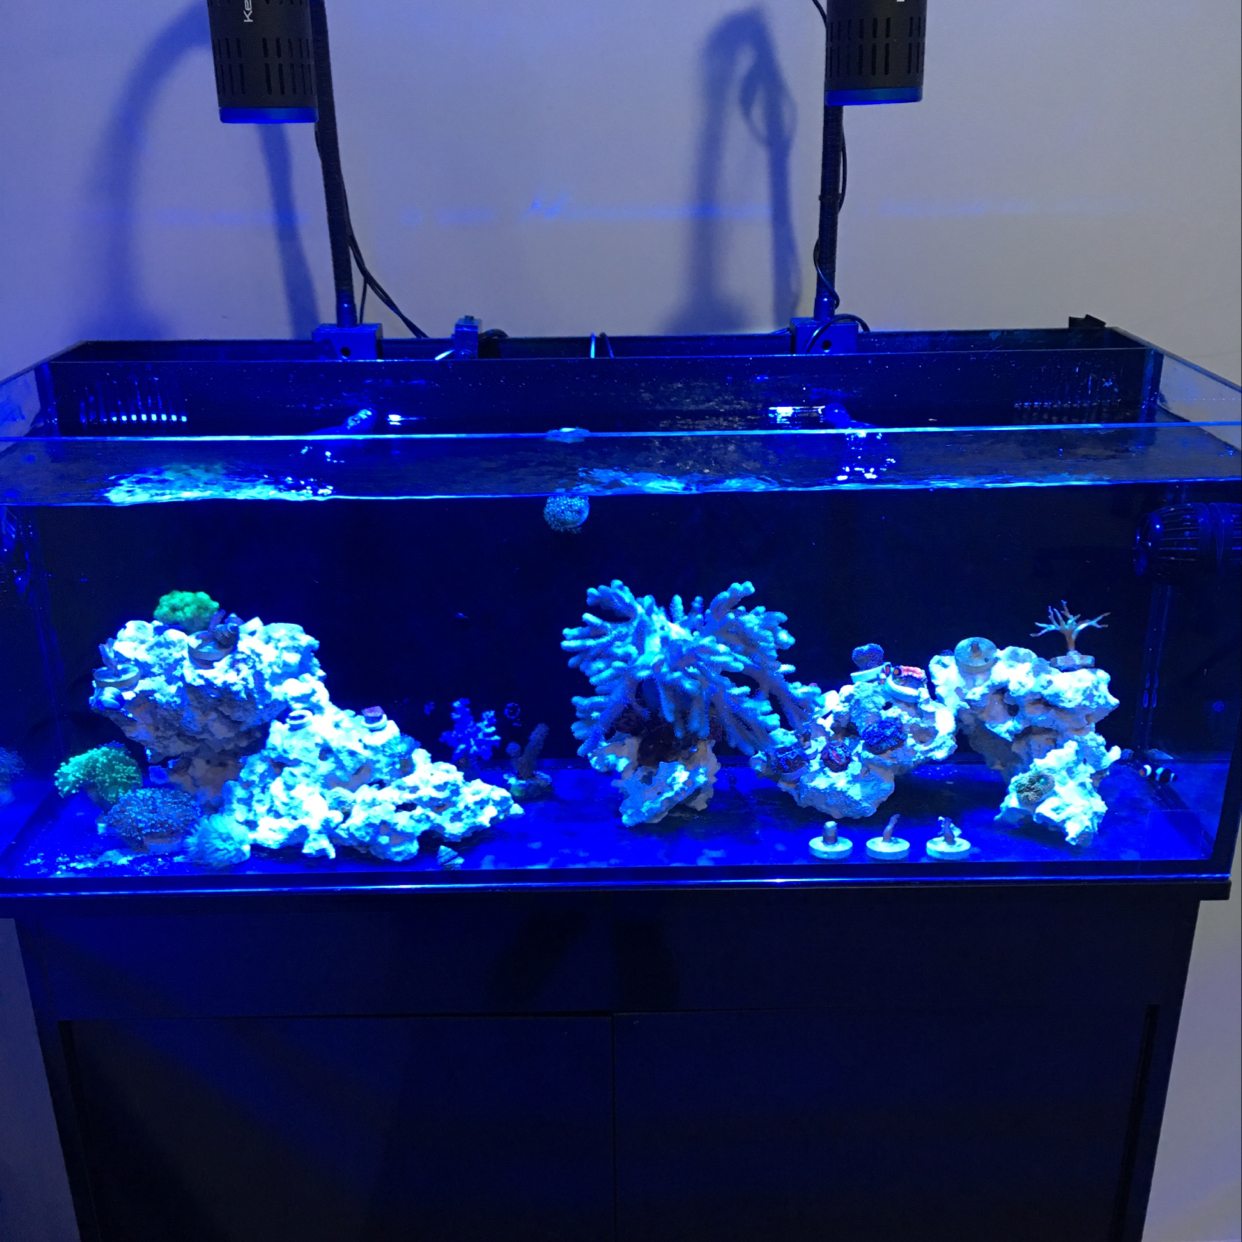 Innovative Marine 30 Coral System on Feb 12, 2019